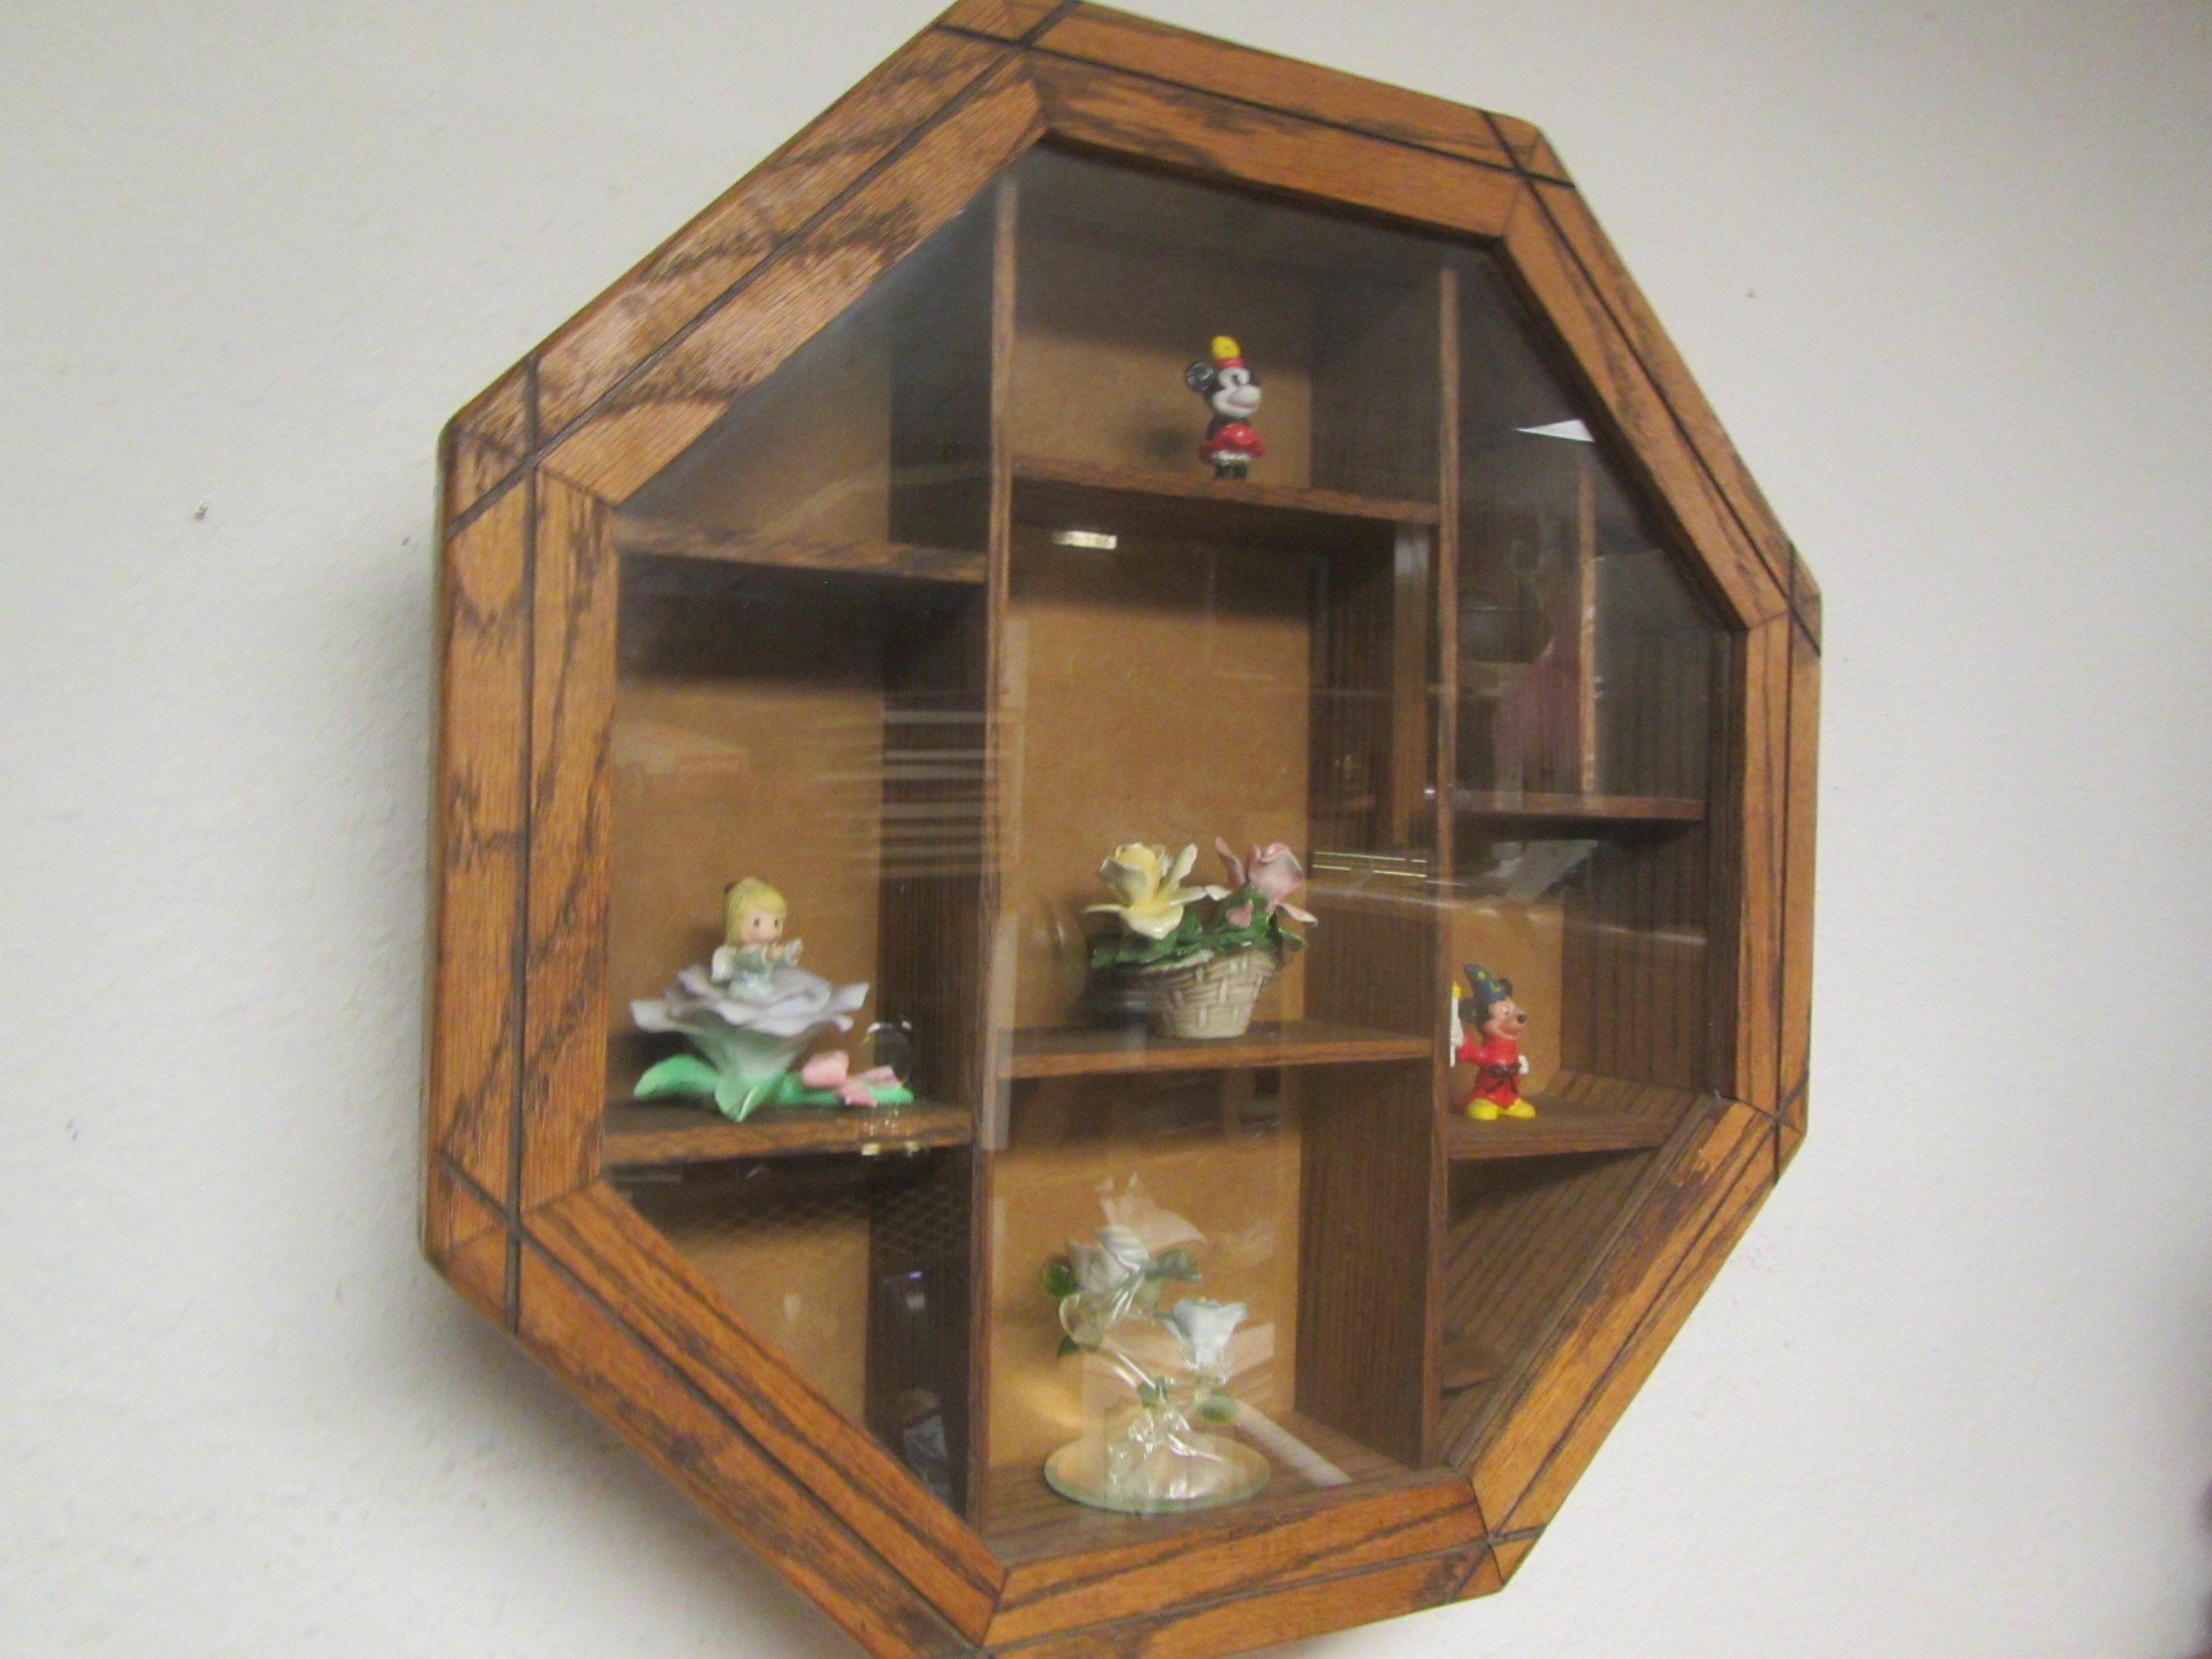 Octagonal Oak Shadow Box With Glass Door 8 Sided Wood Curio Shelf Wall Display Case With Glass Door 8 Sided Wall Display Case Metal Shelves Shelf Decor